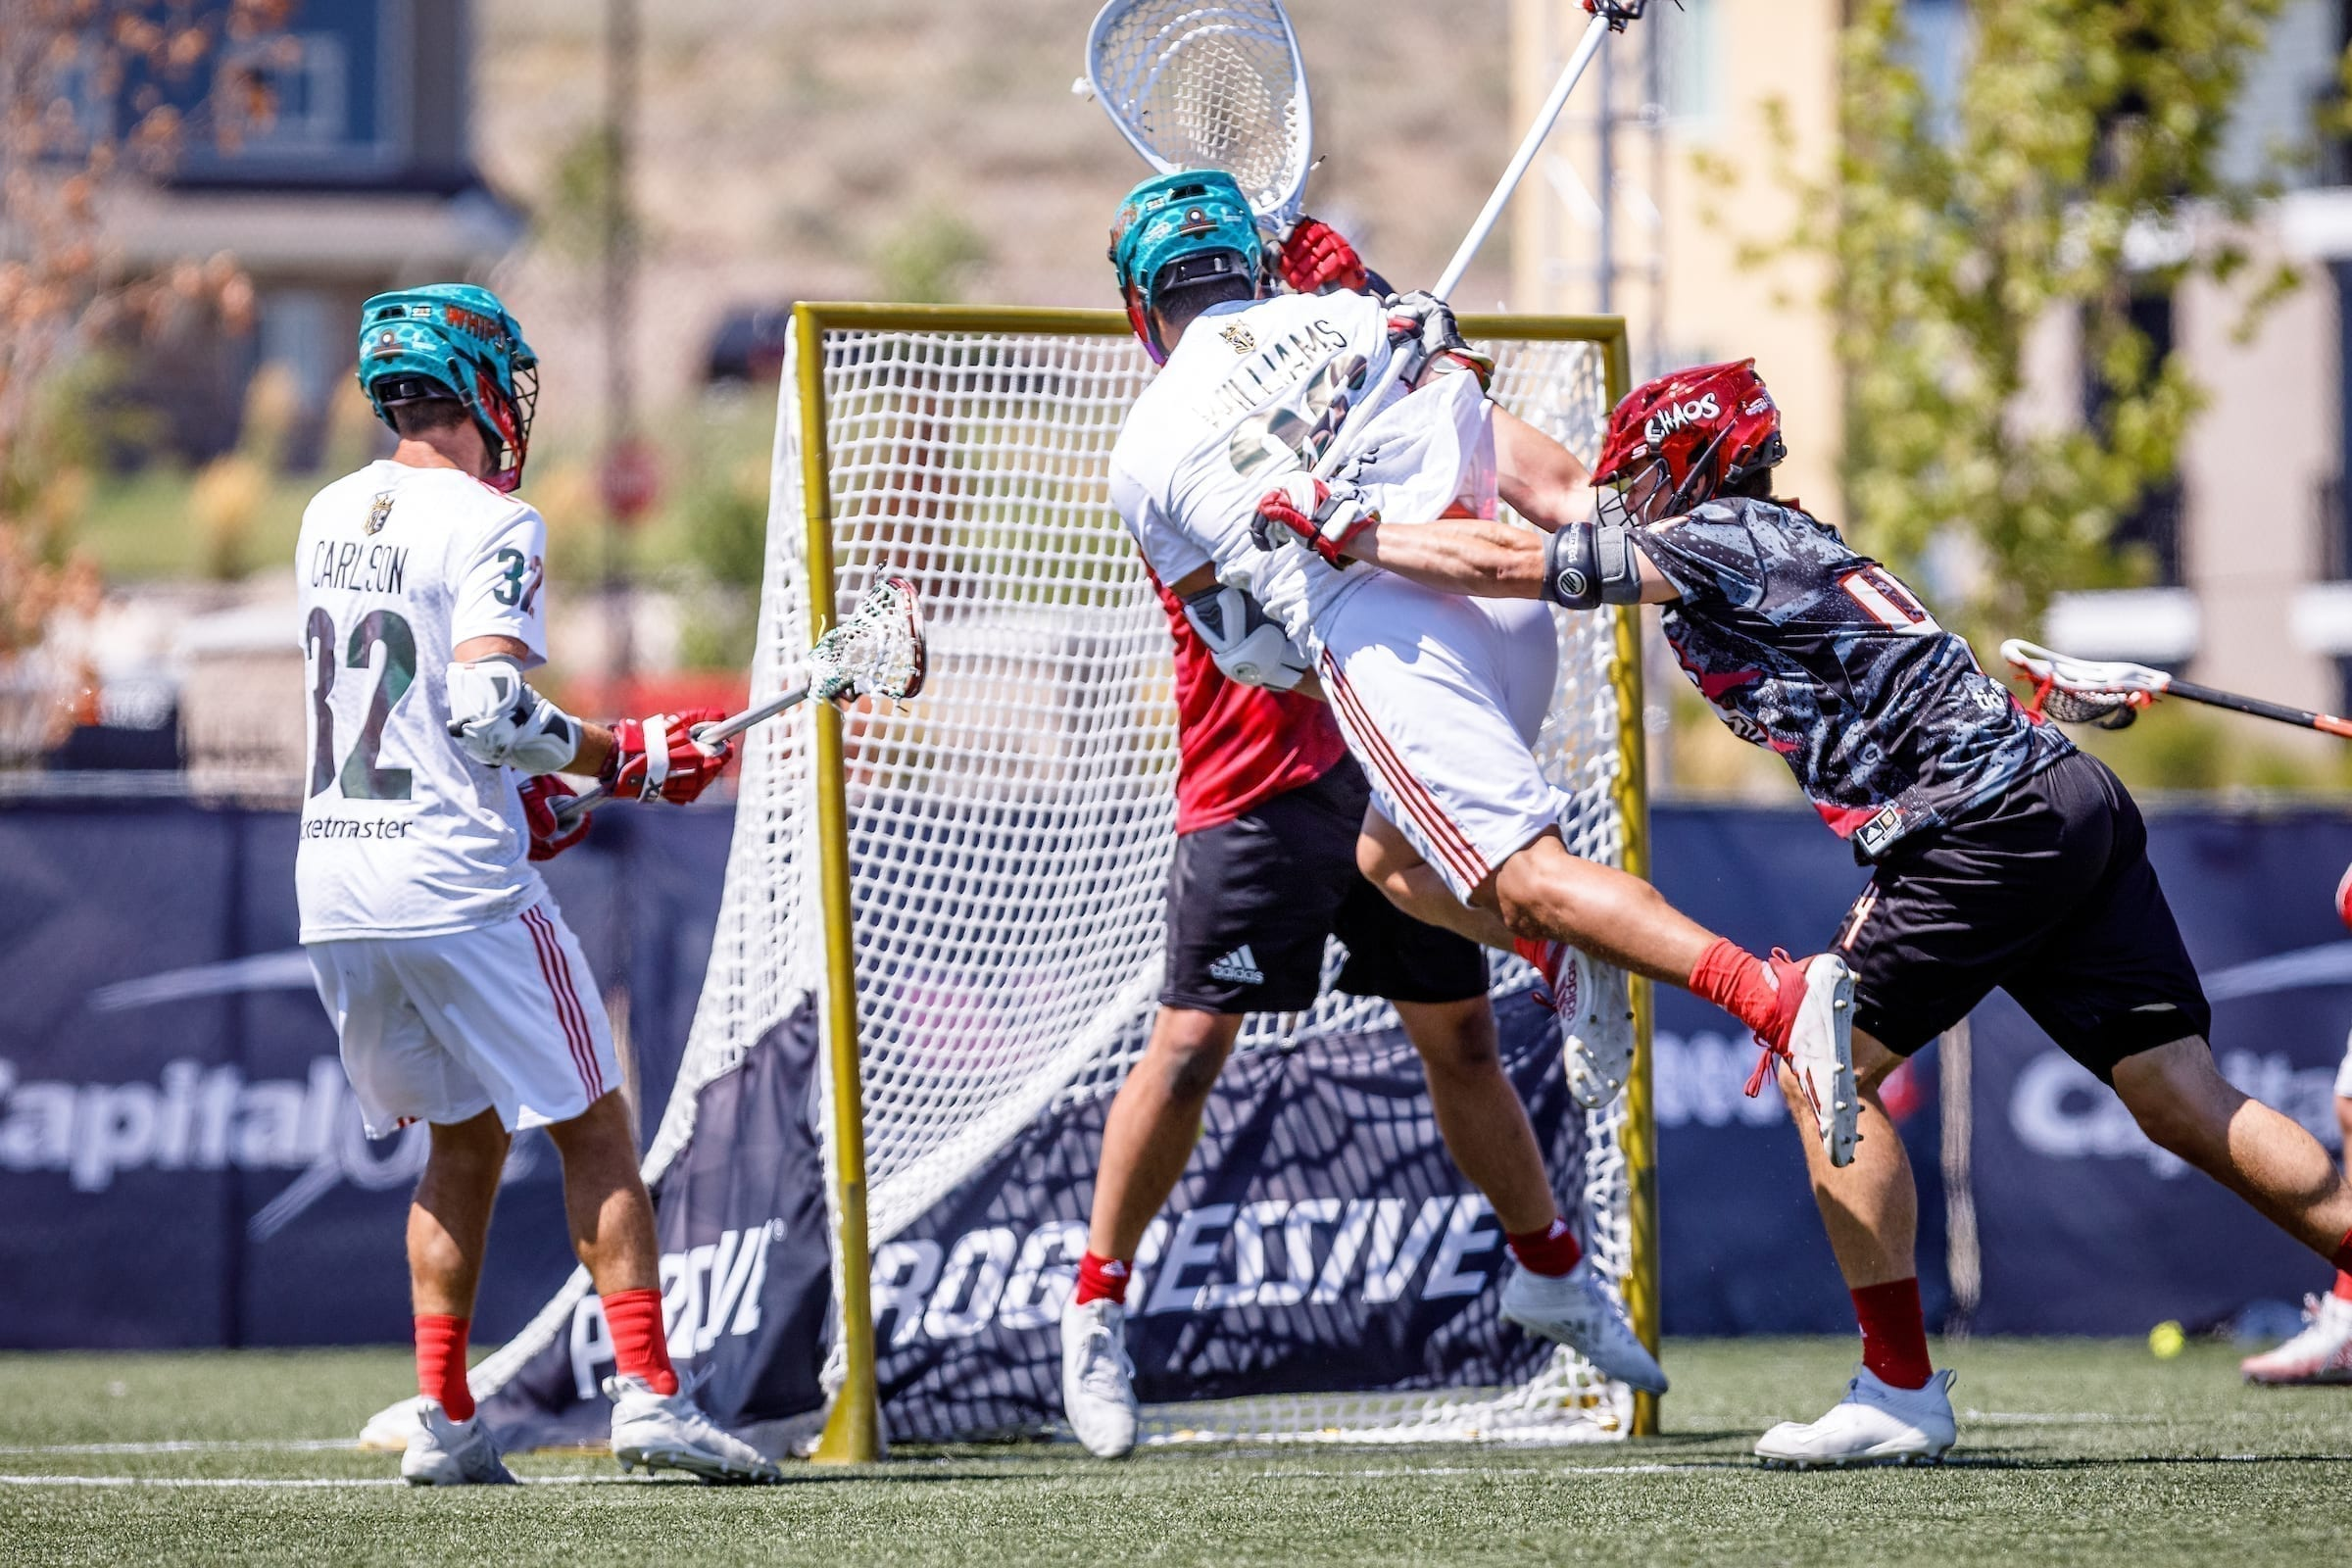 13 PLL Championship Plays Led to Whipsnakes Win